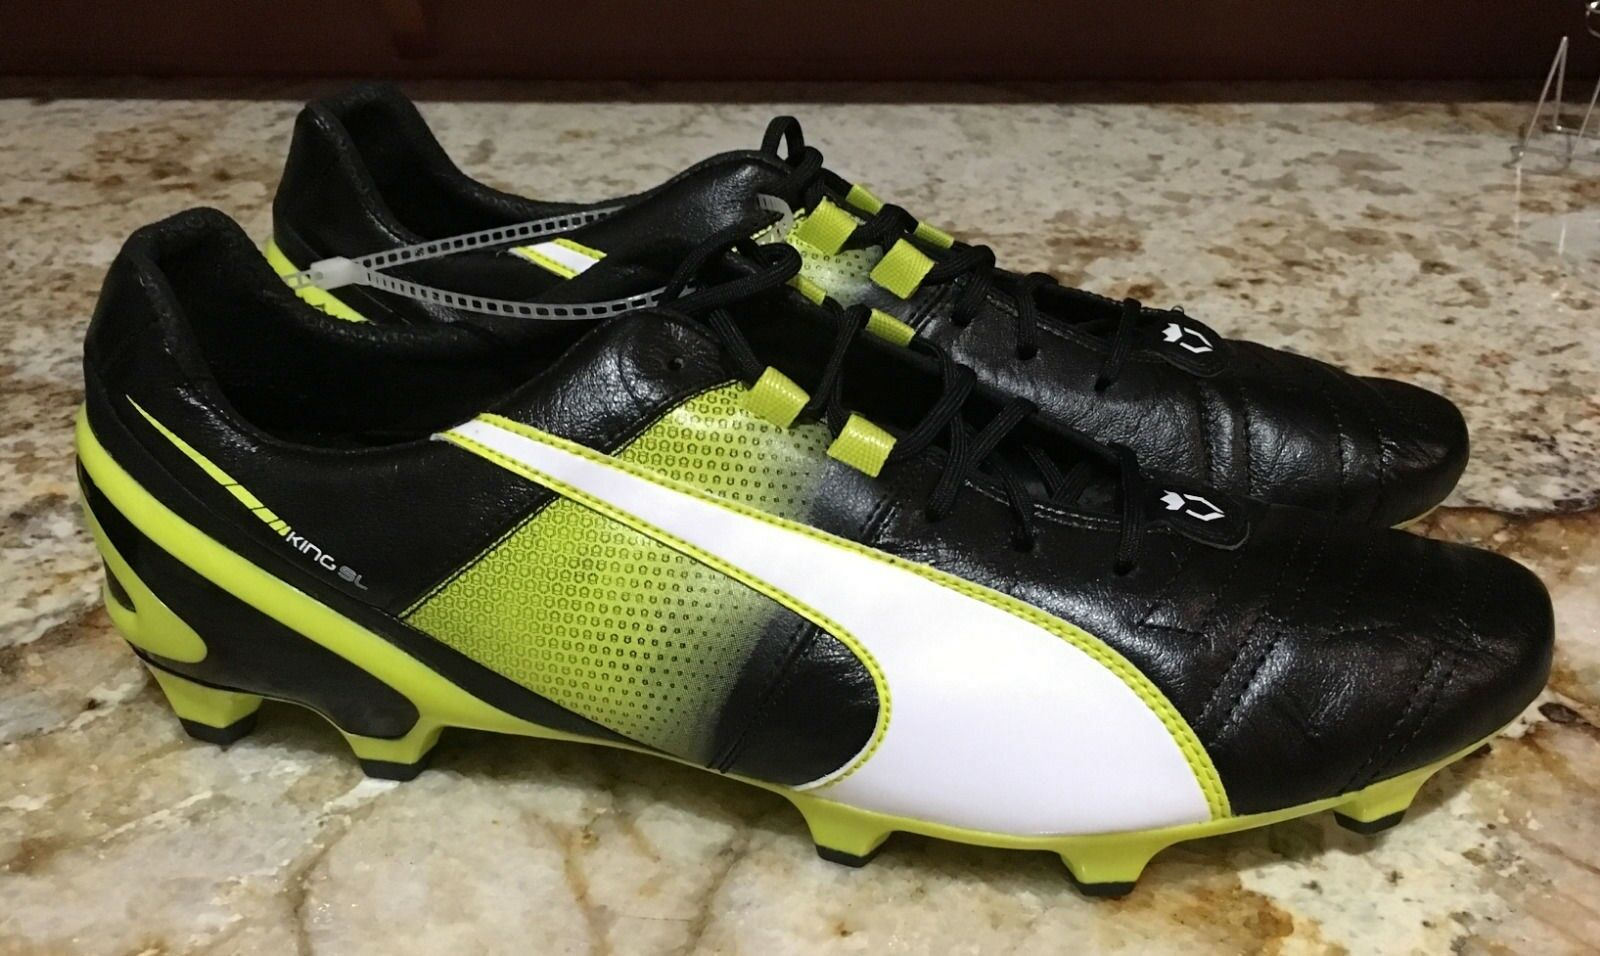 PUMA King II Superlight FG Black White Yellow Leather Soccer Cleats NEW Mens 12